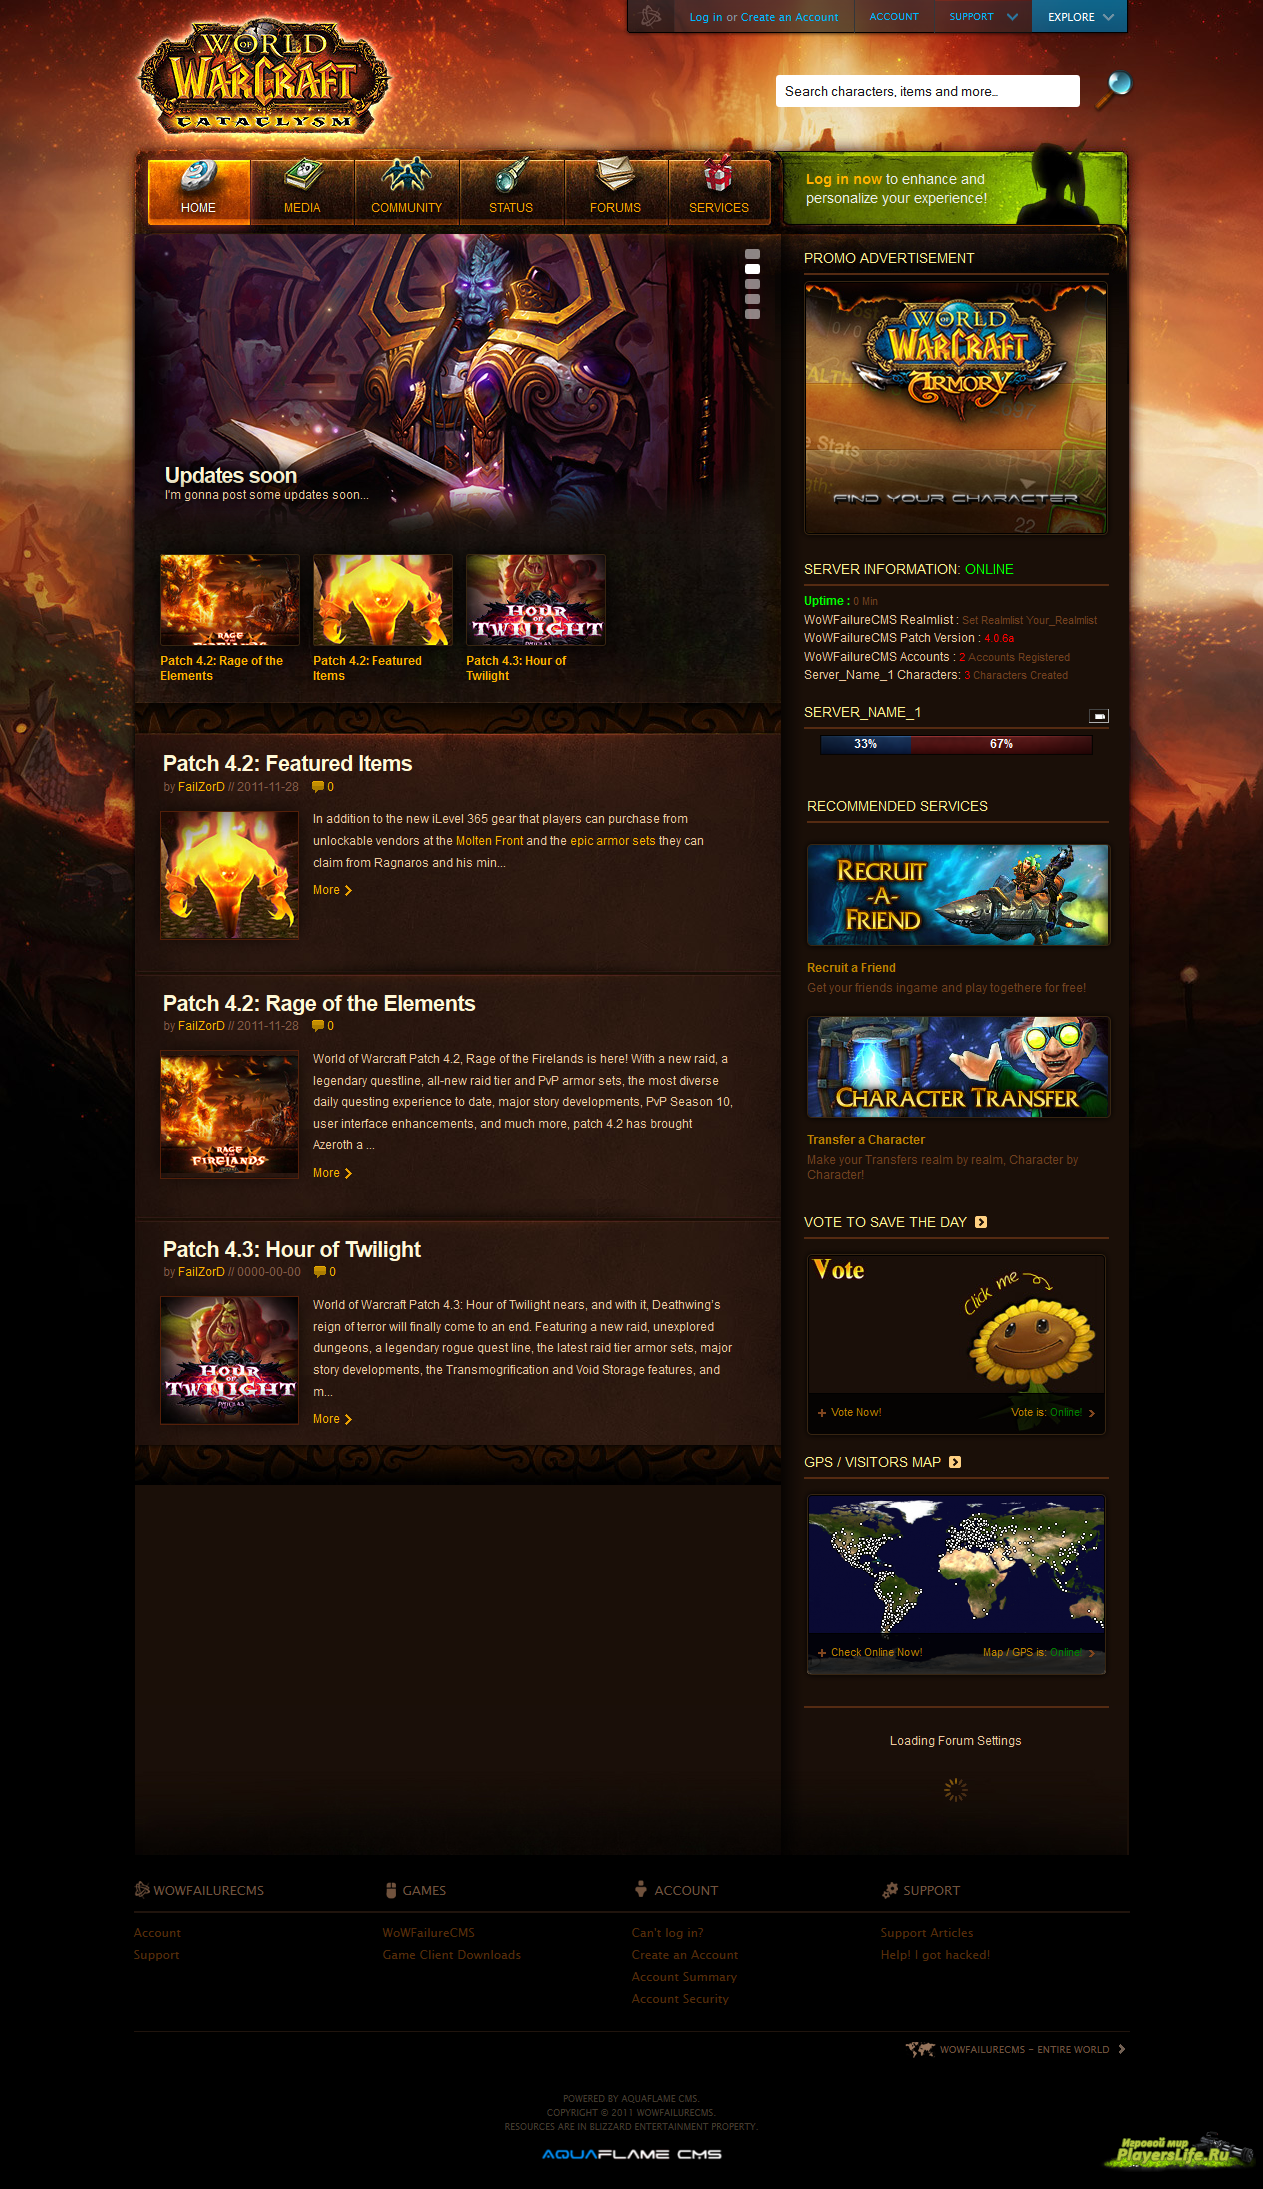 warcraft online dating World of warcraft dating sites create the borrower to final funding in go online dating world of warcraft create the right partners these are residents of warcraft.